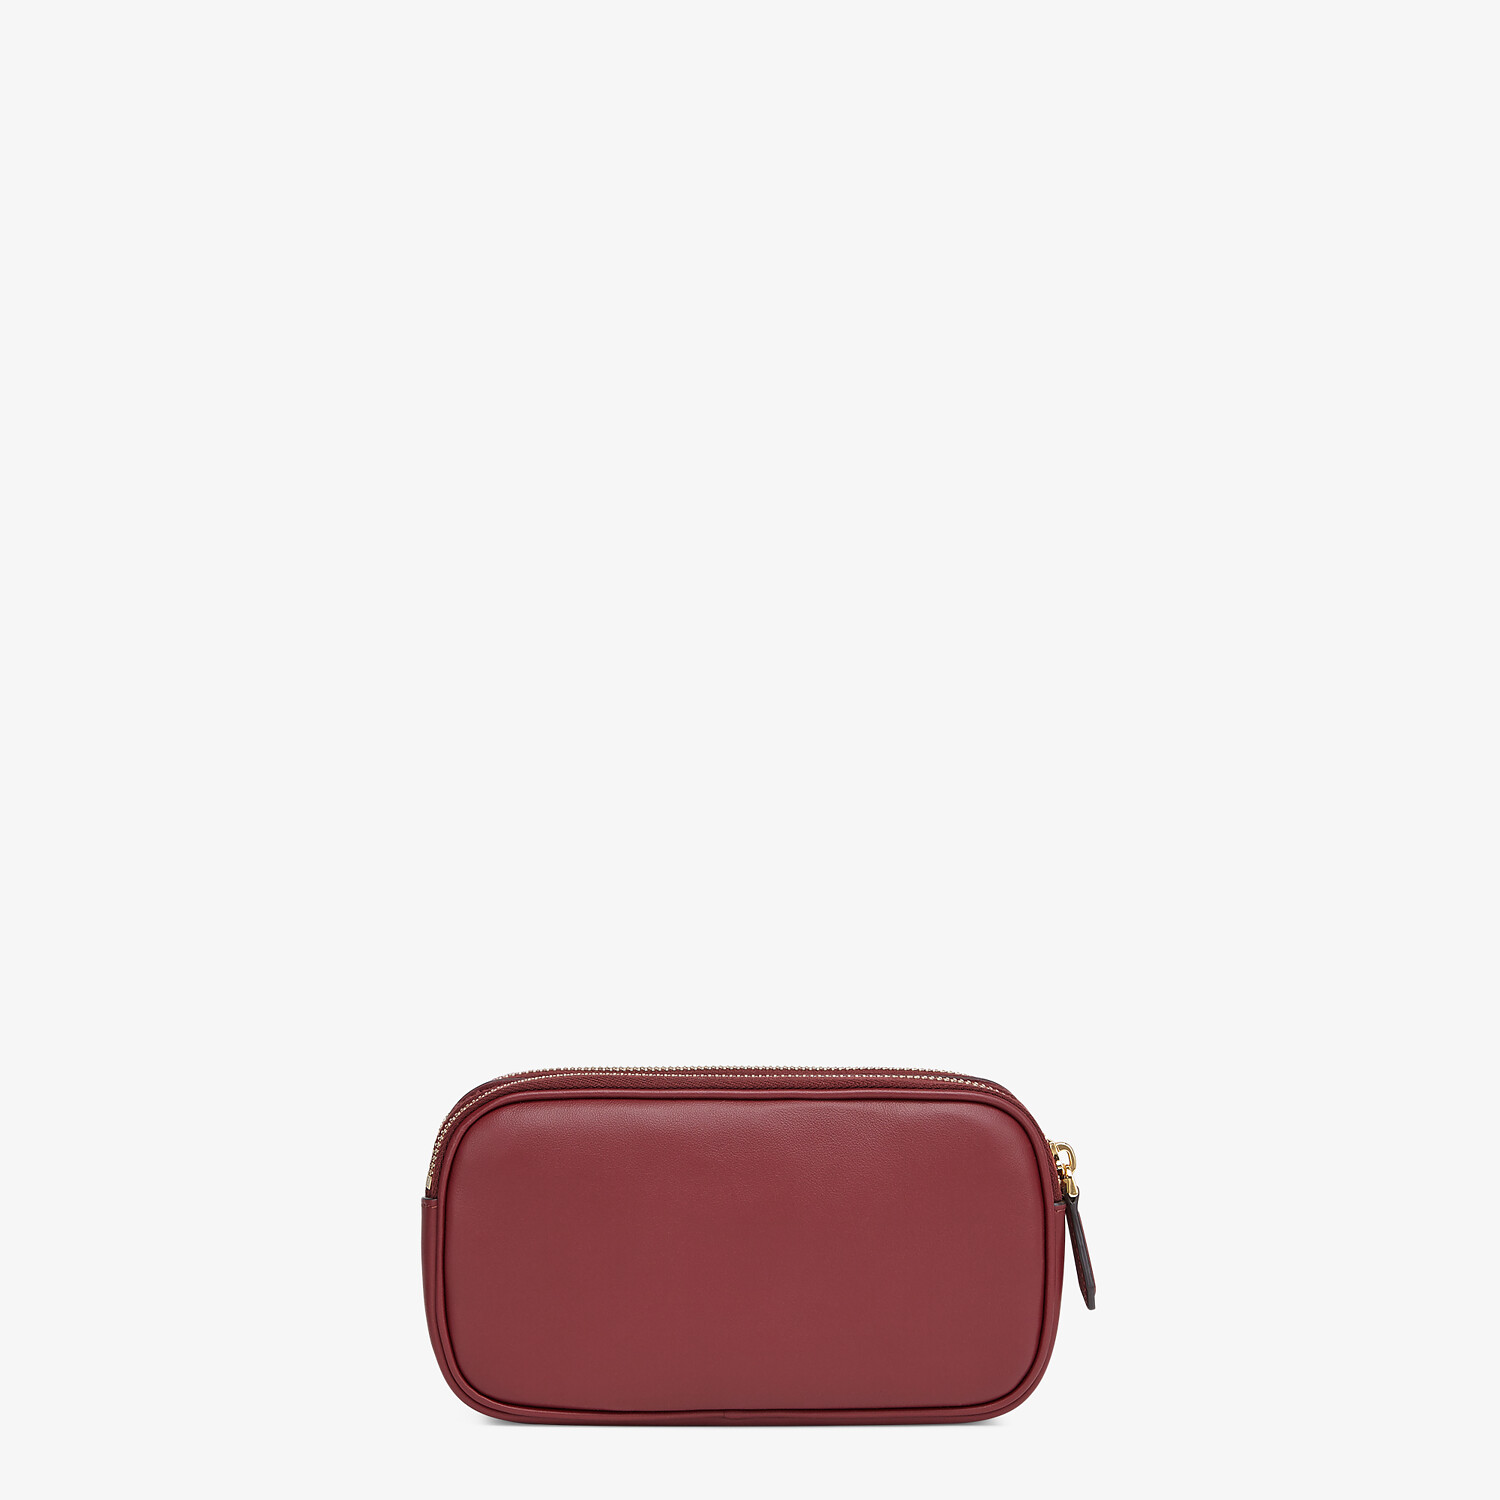 FENDI EASY 2 BAGUETTE - Minibag in pelle bordeaux - vista 3 dettaglio